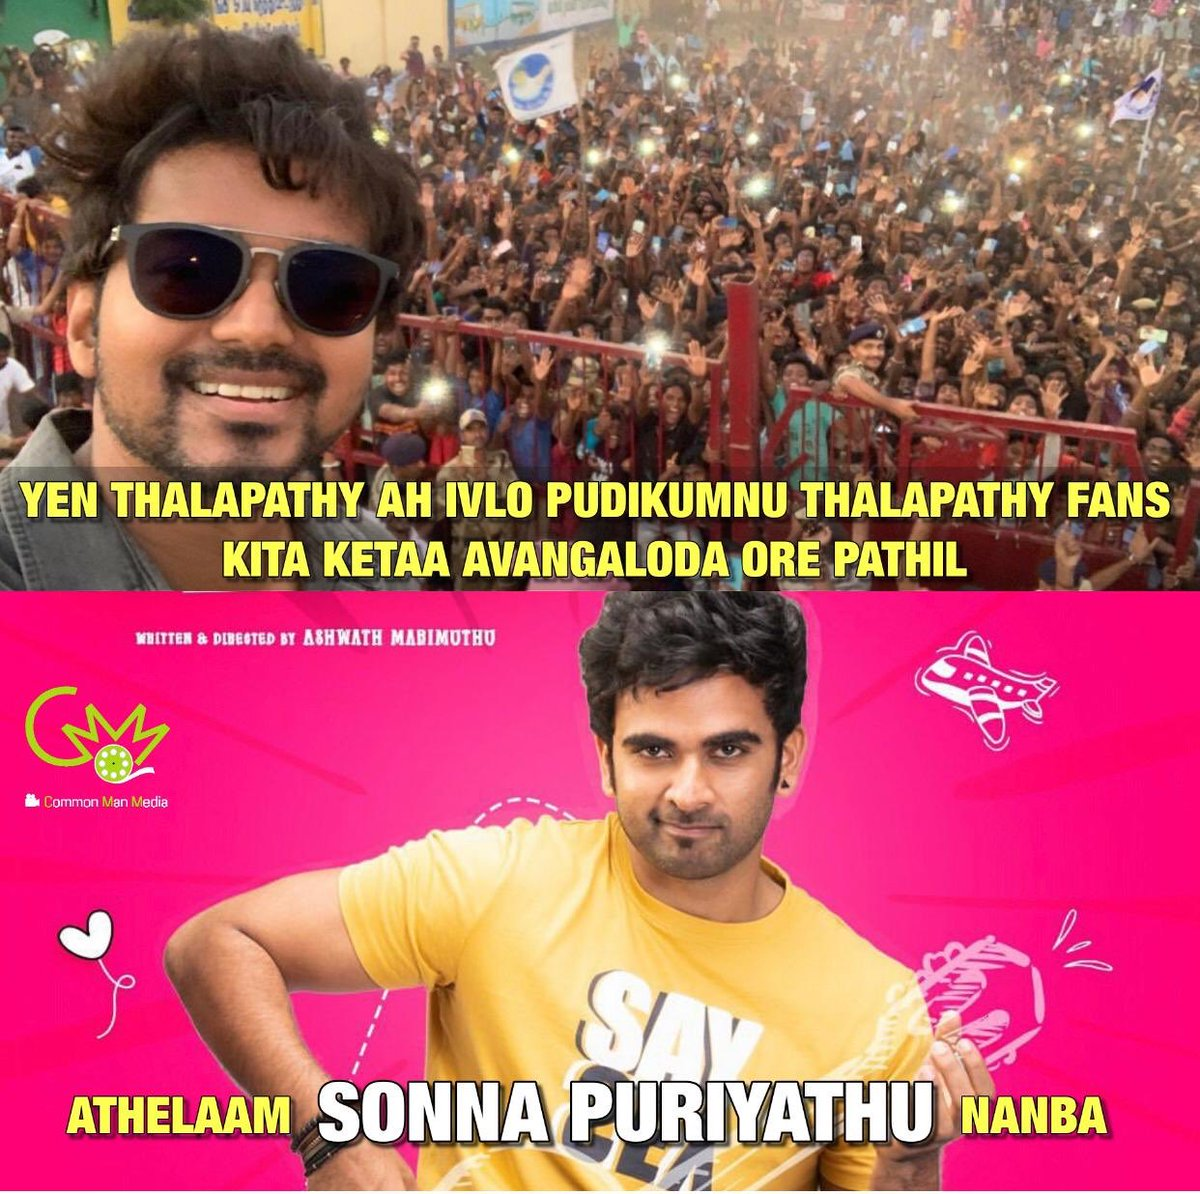 #Thalapathy #ThalapathyFans #OhMyKadavule - Sonna Puriyathu on how much #Thalapathy & #ThalapathyFans loves each other